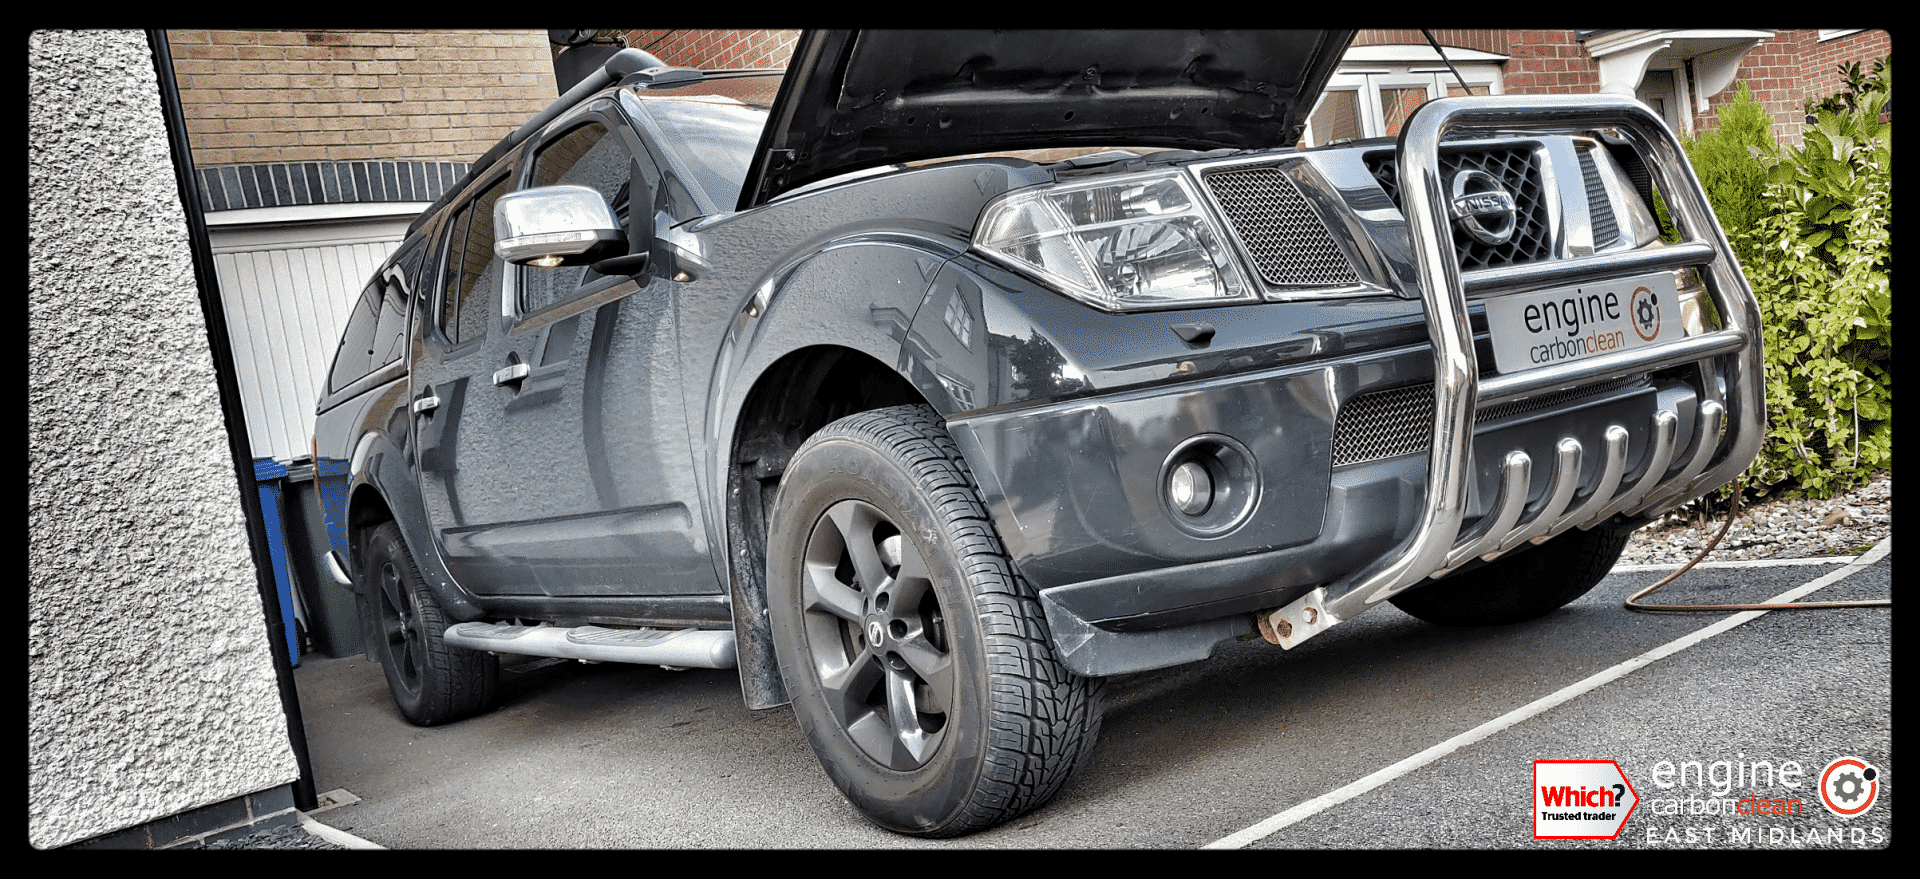 Just bought a vehicle? Diagnostic consultation and Engine Carbon Clean on a Nissan Navara 2.5dci (2010 - 76,164 miles)